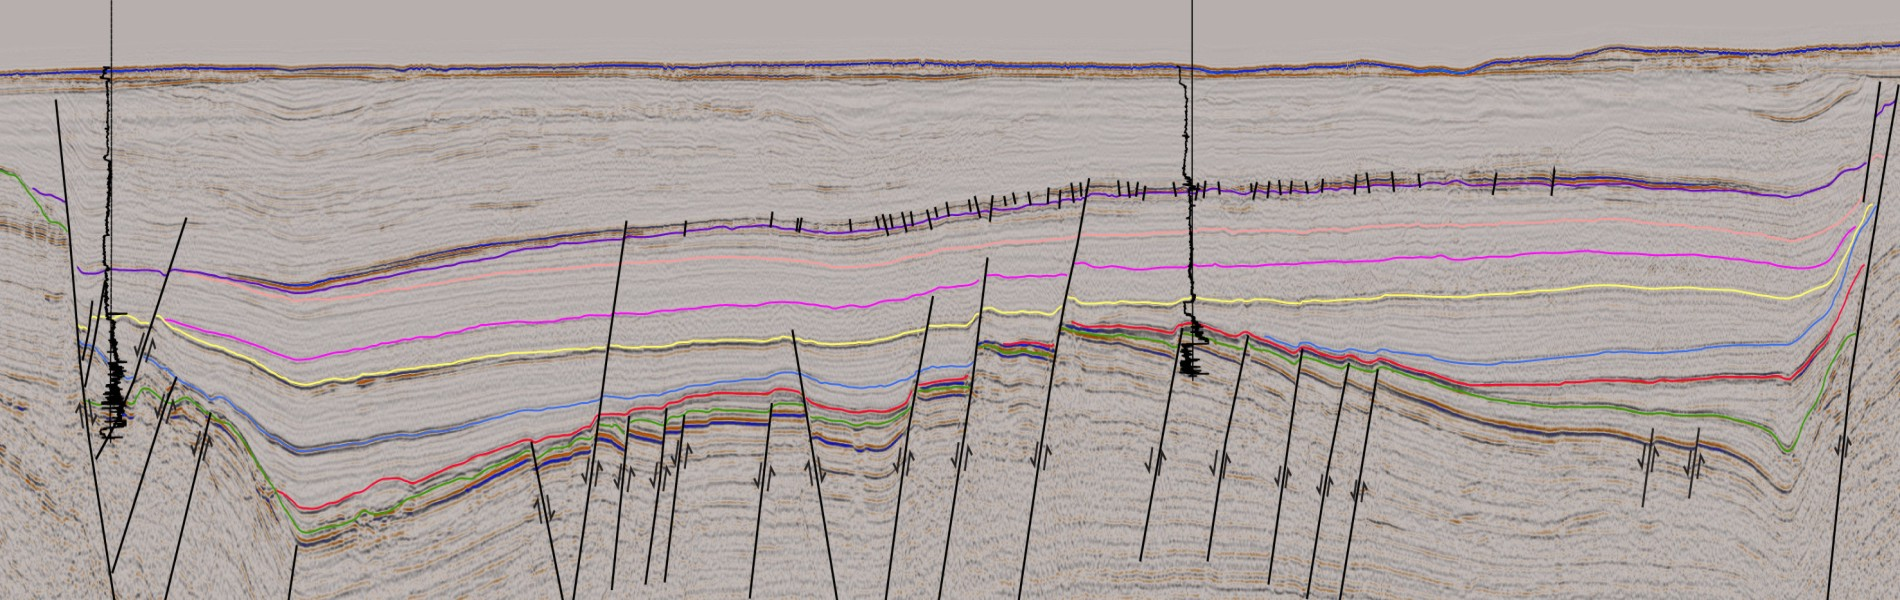 GEOLOGICAL SUBSURFACE MAPPING